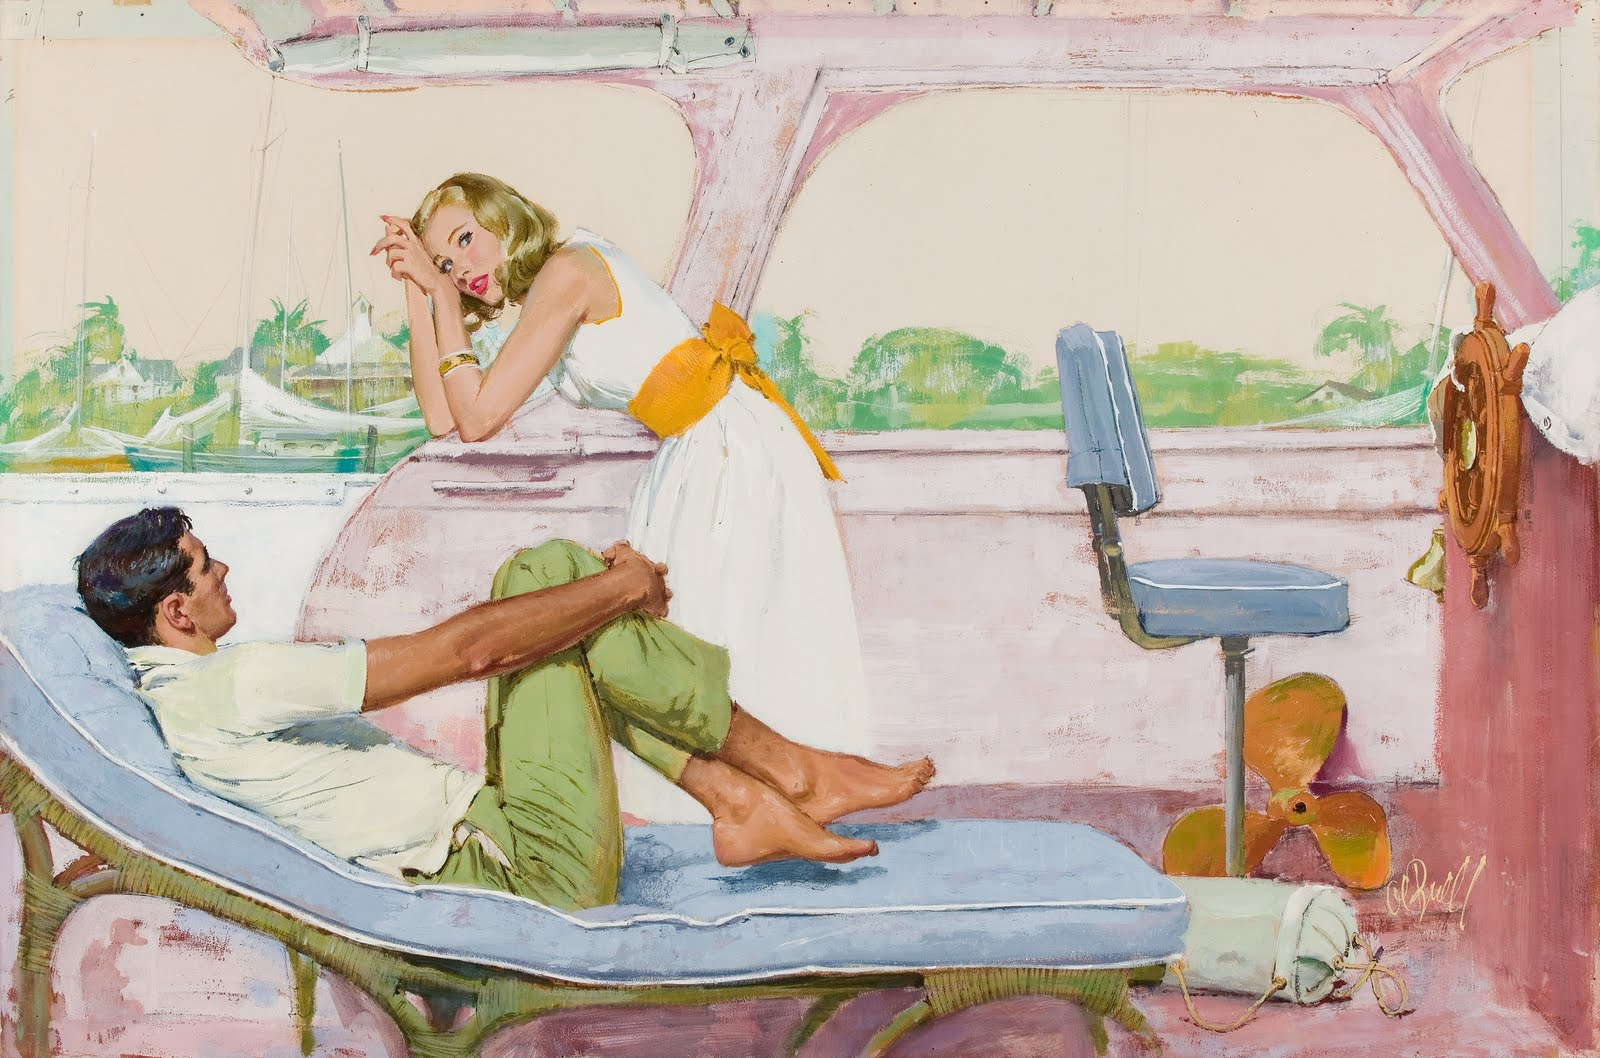 AL BUELL (American, 1910-1996). The Tenth Passenger, Saturday Evening Post illustration, October 7, 1960